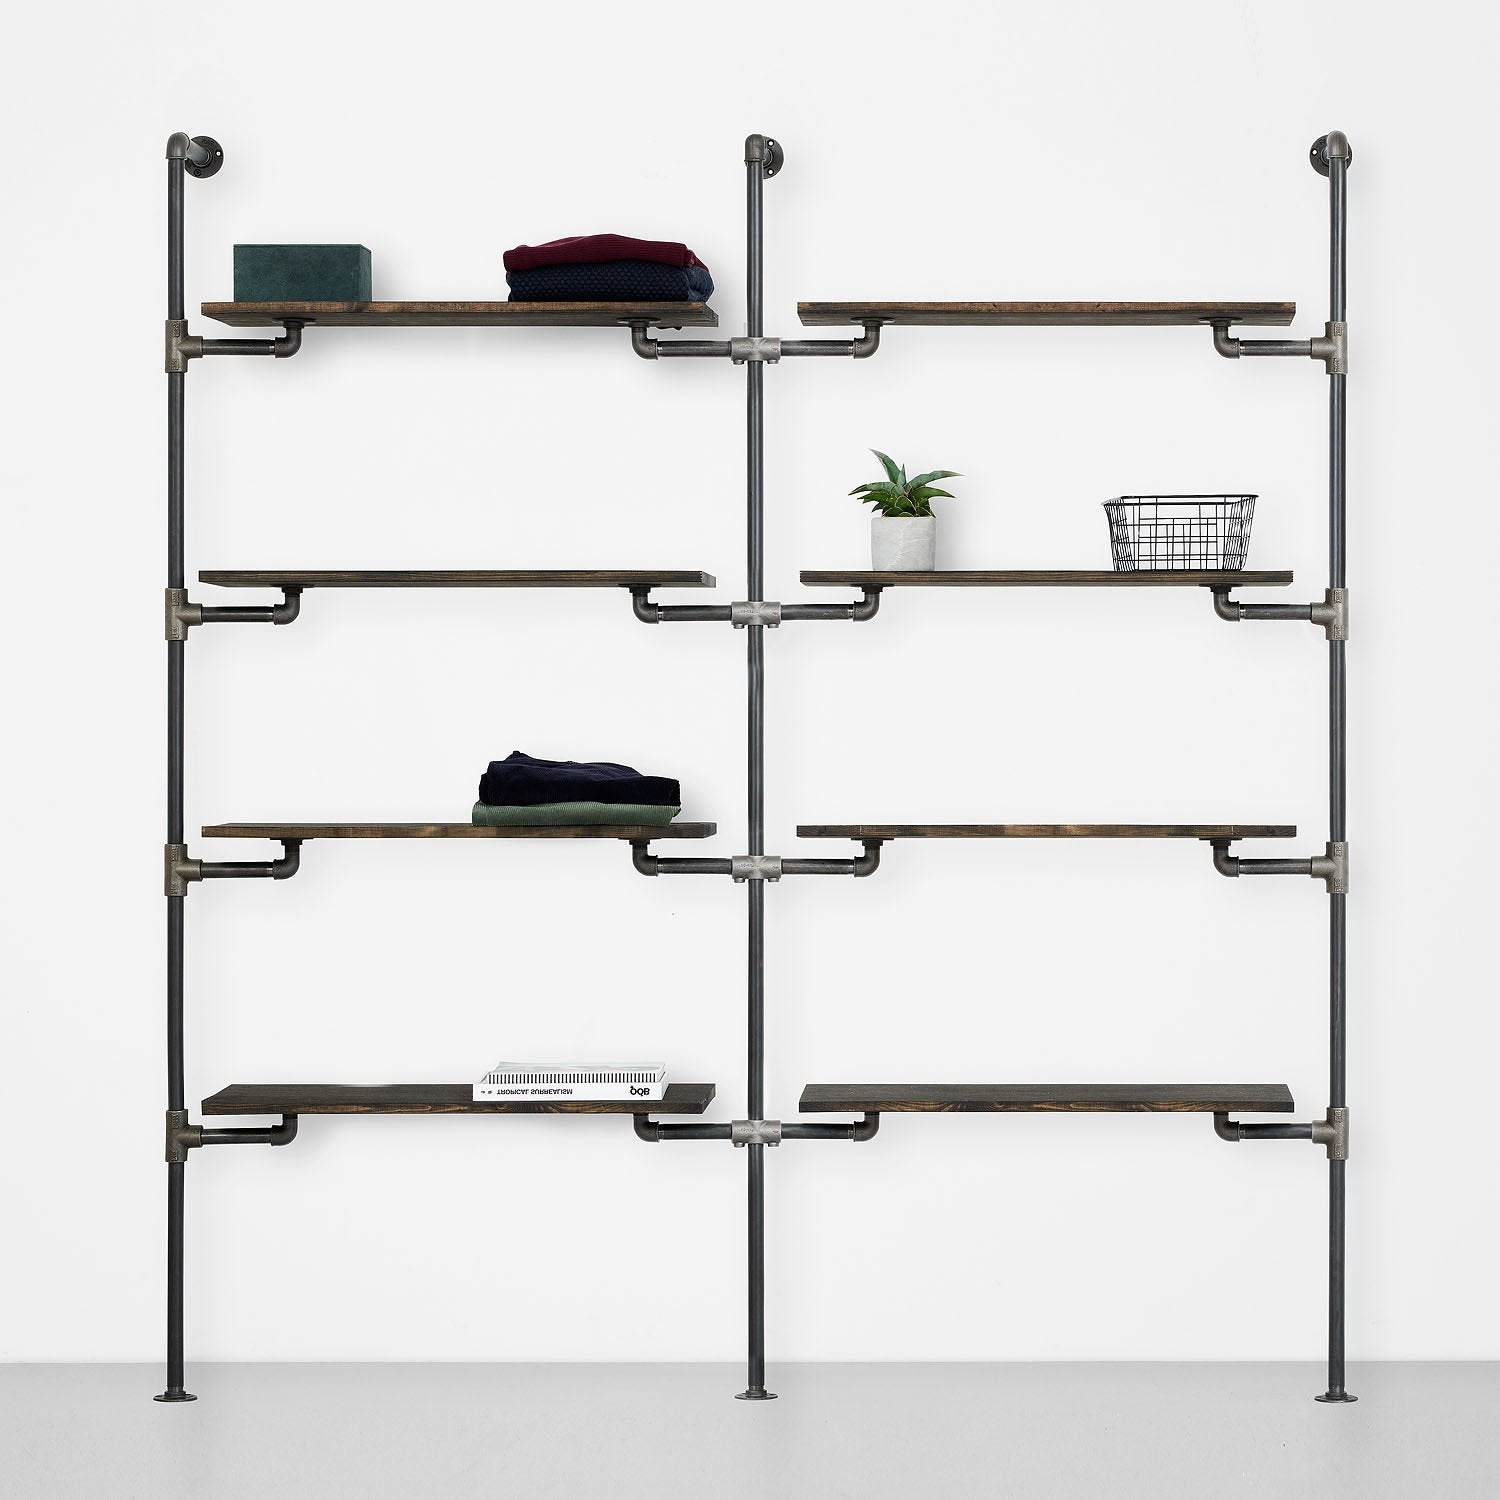 The Walk-In 2 row wardrobe system - 4 shelves/ 4 shelves